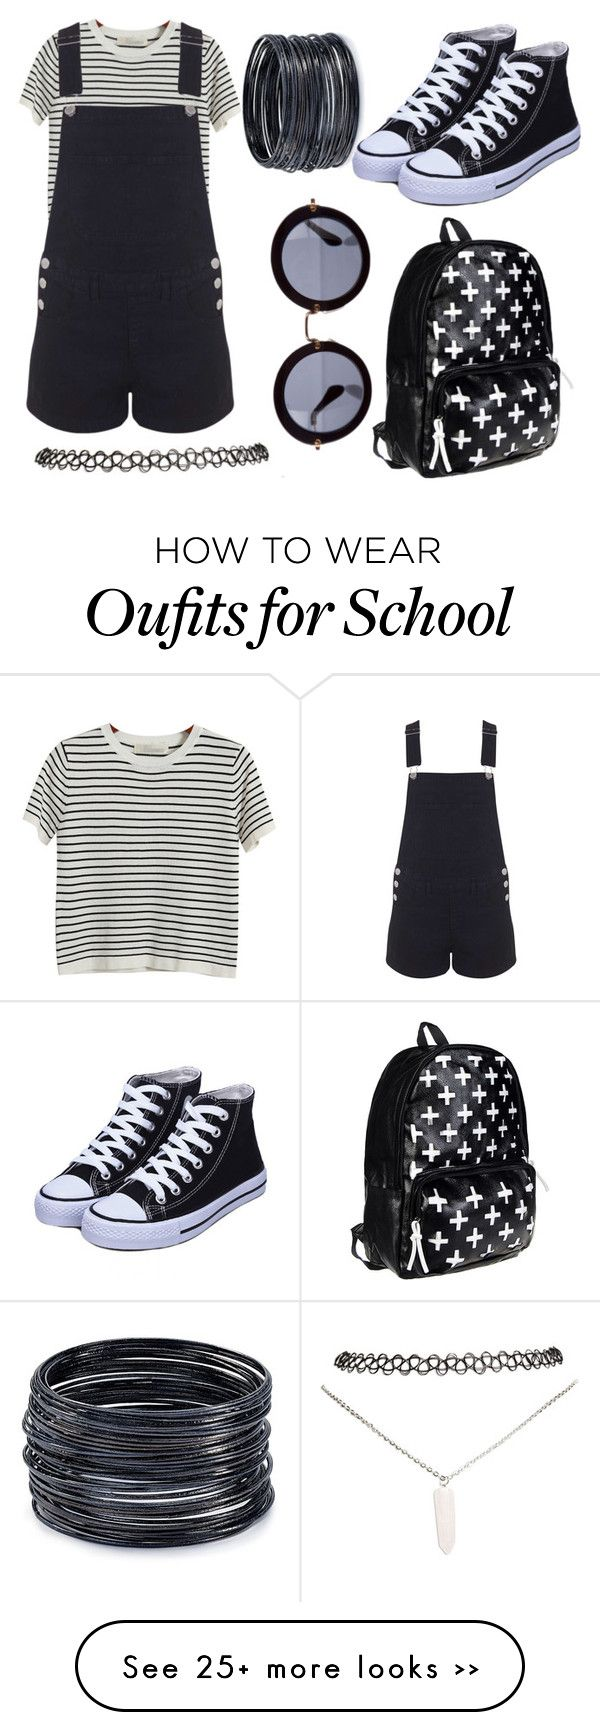 """school wear #11"" by alexfred on Polyvore featuring moda, Chicnova Fashion, Miss Selfridge, ABS by Allen Schwartz, Wet Seal e Miu Miu"